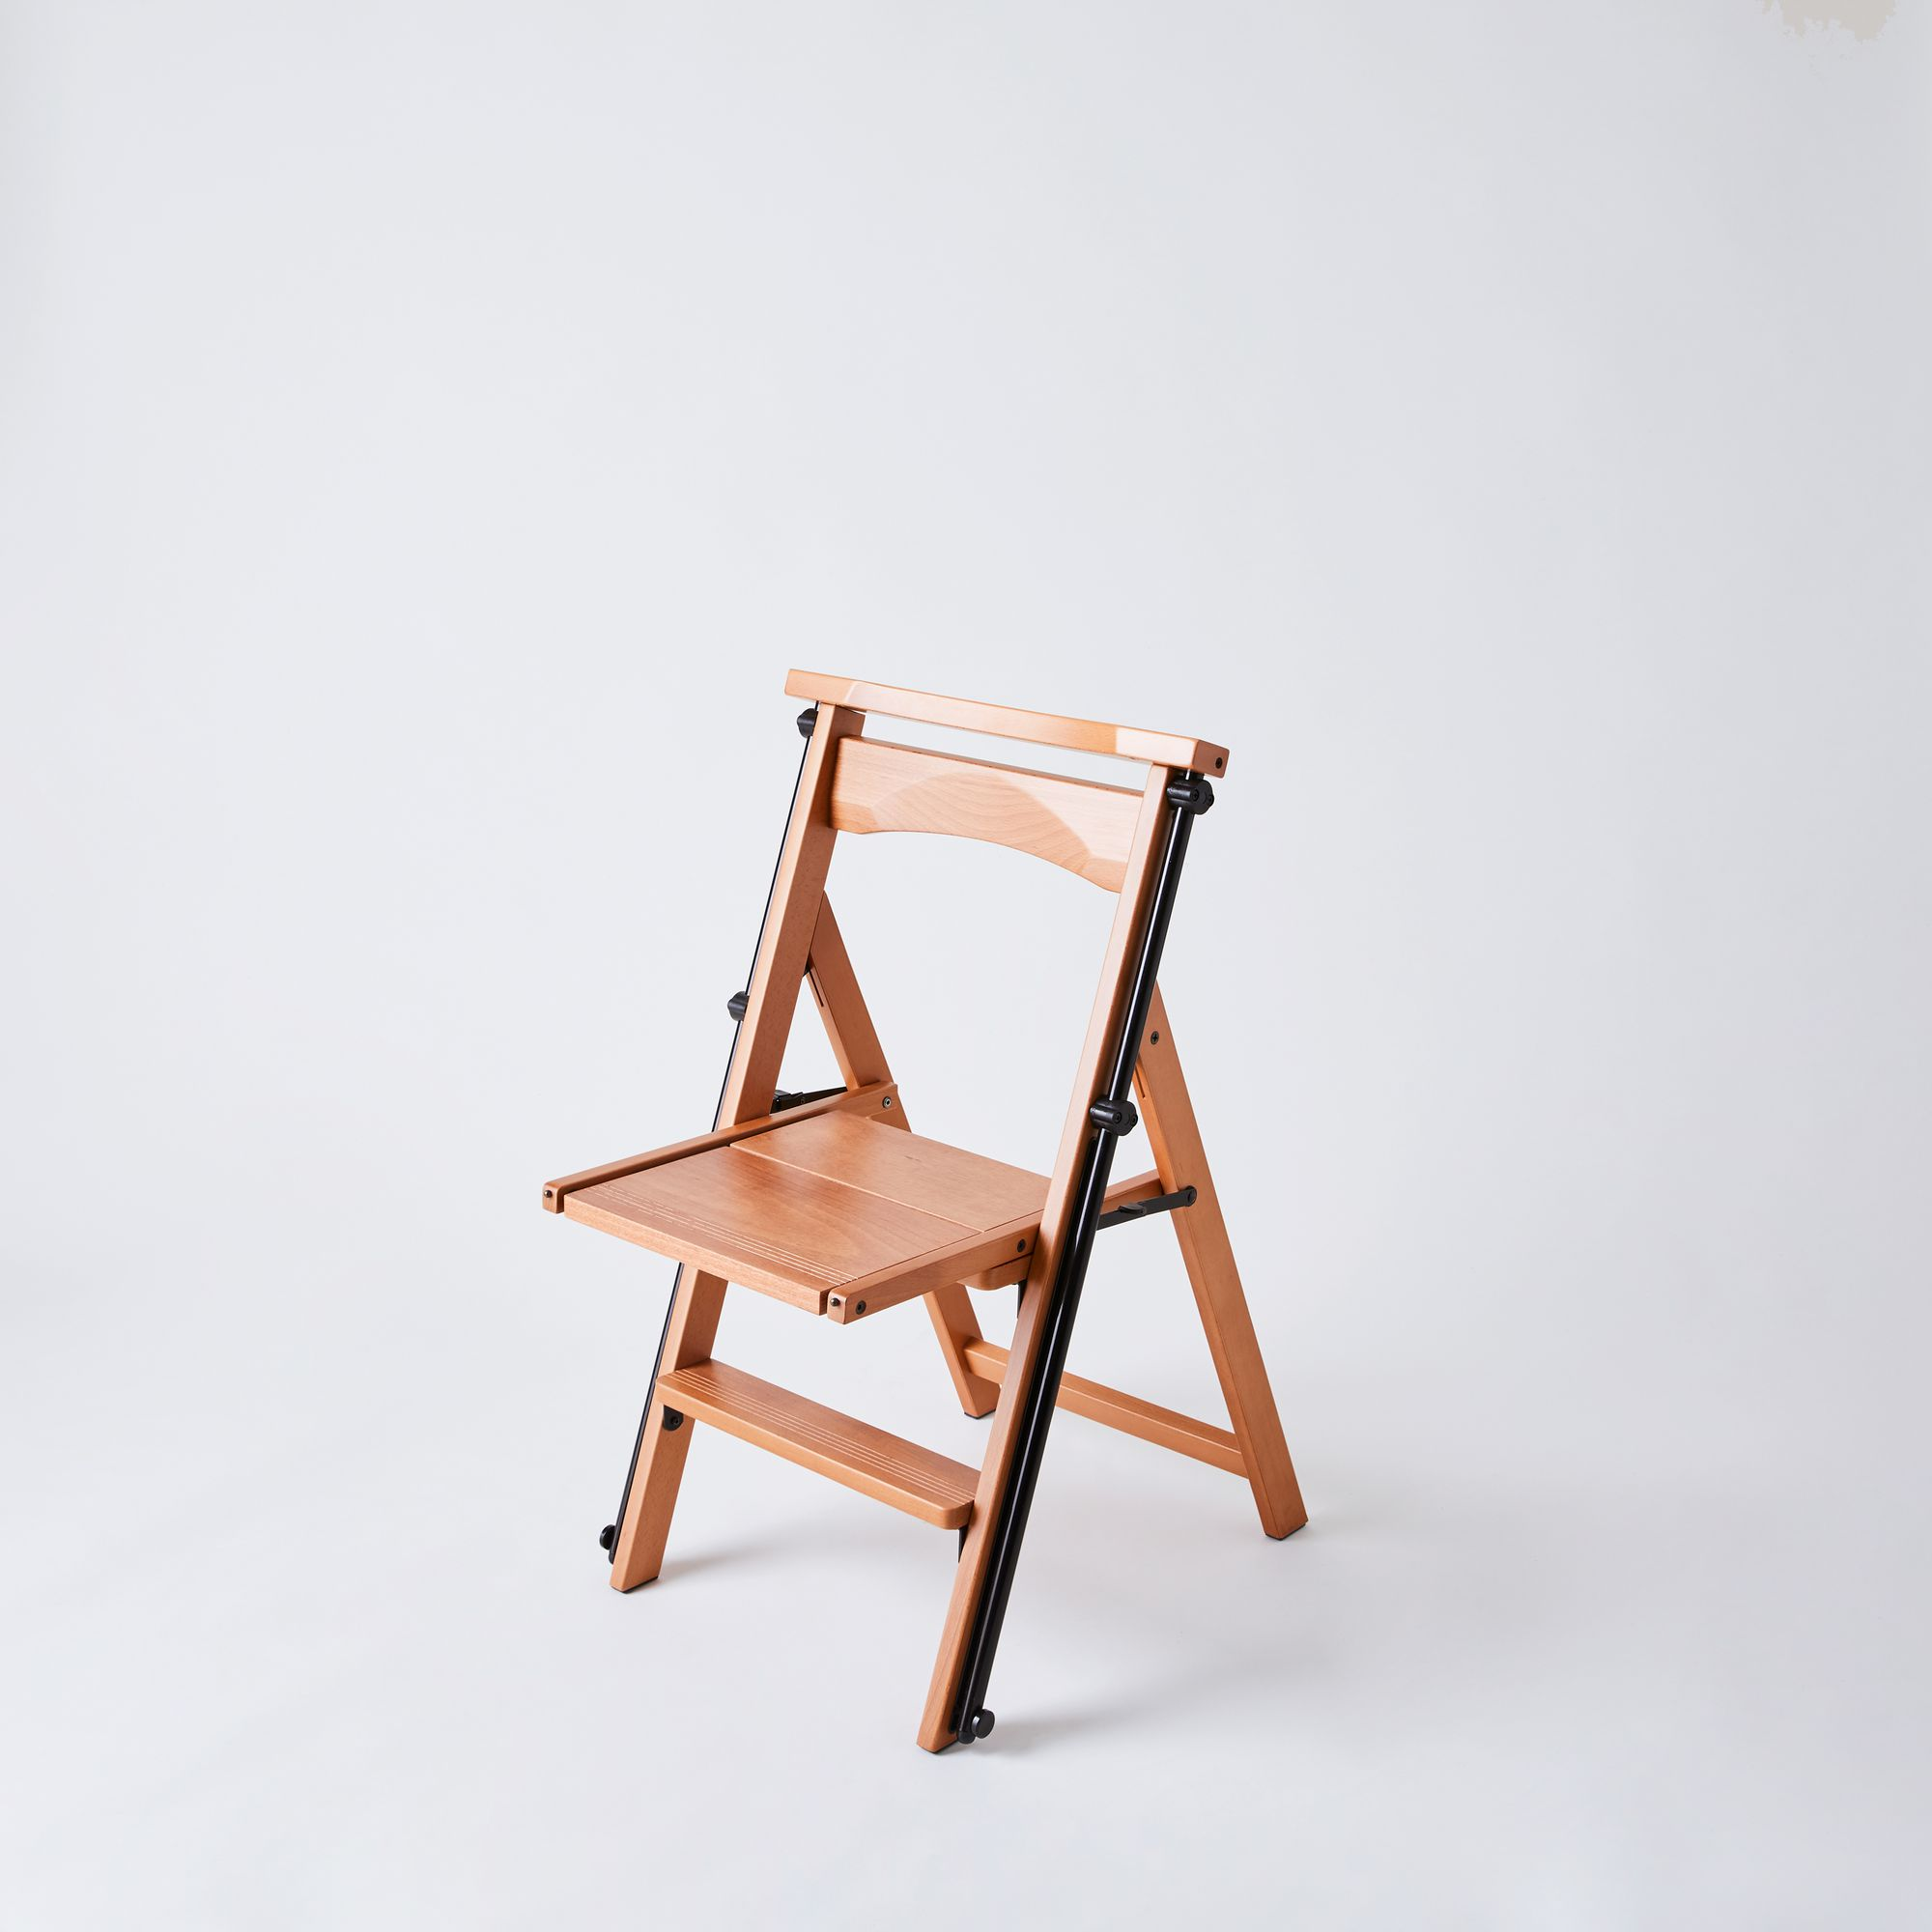 Hasegawa Arredamenti Eletta Wooden Ladder Chair 4 Step On Food52